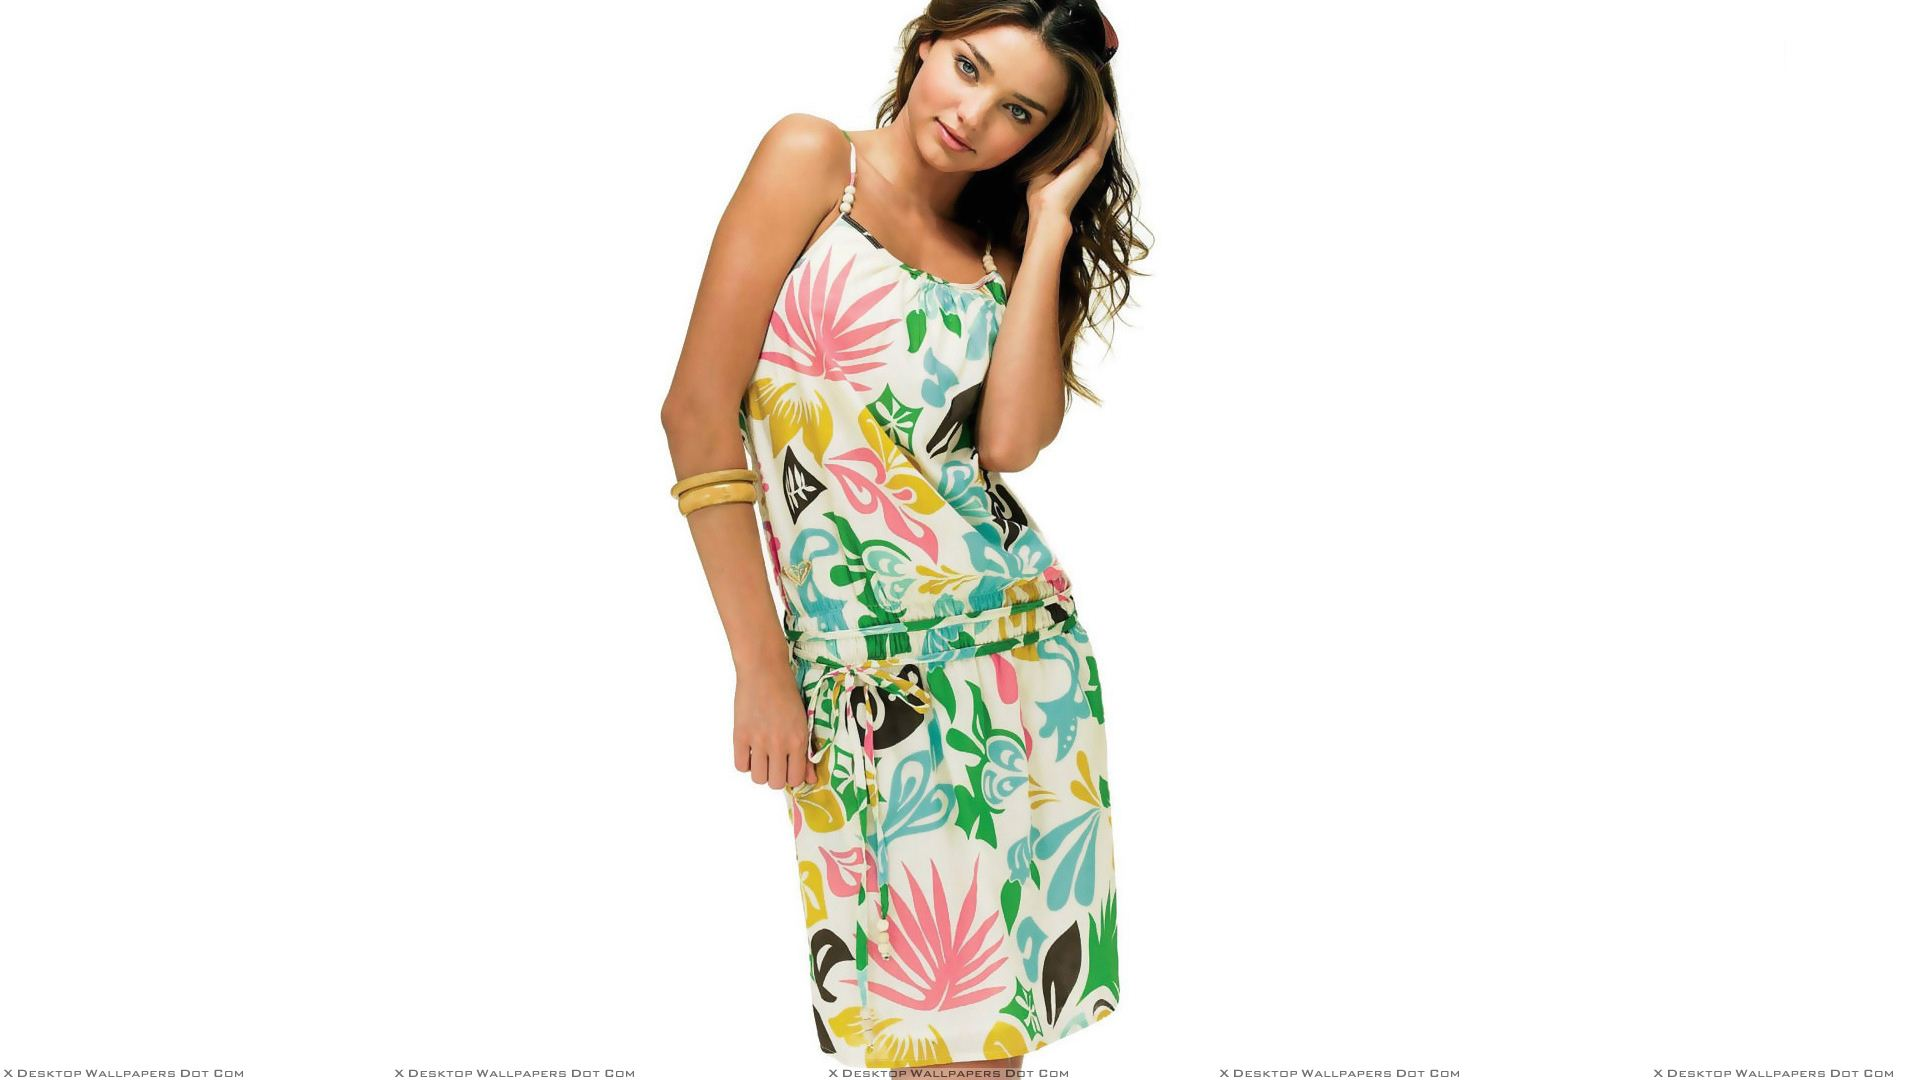 miranda kerr in colorful dress modeling pose n white background